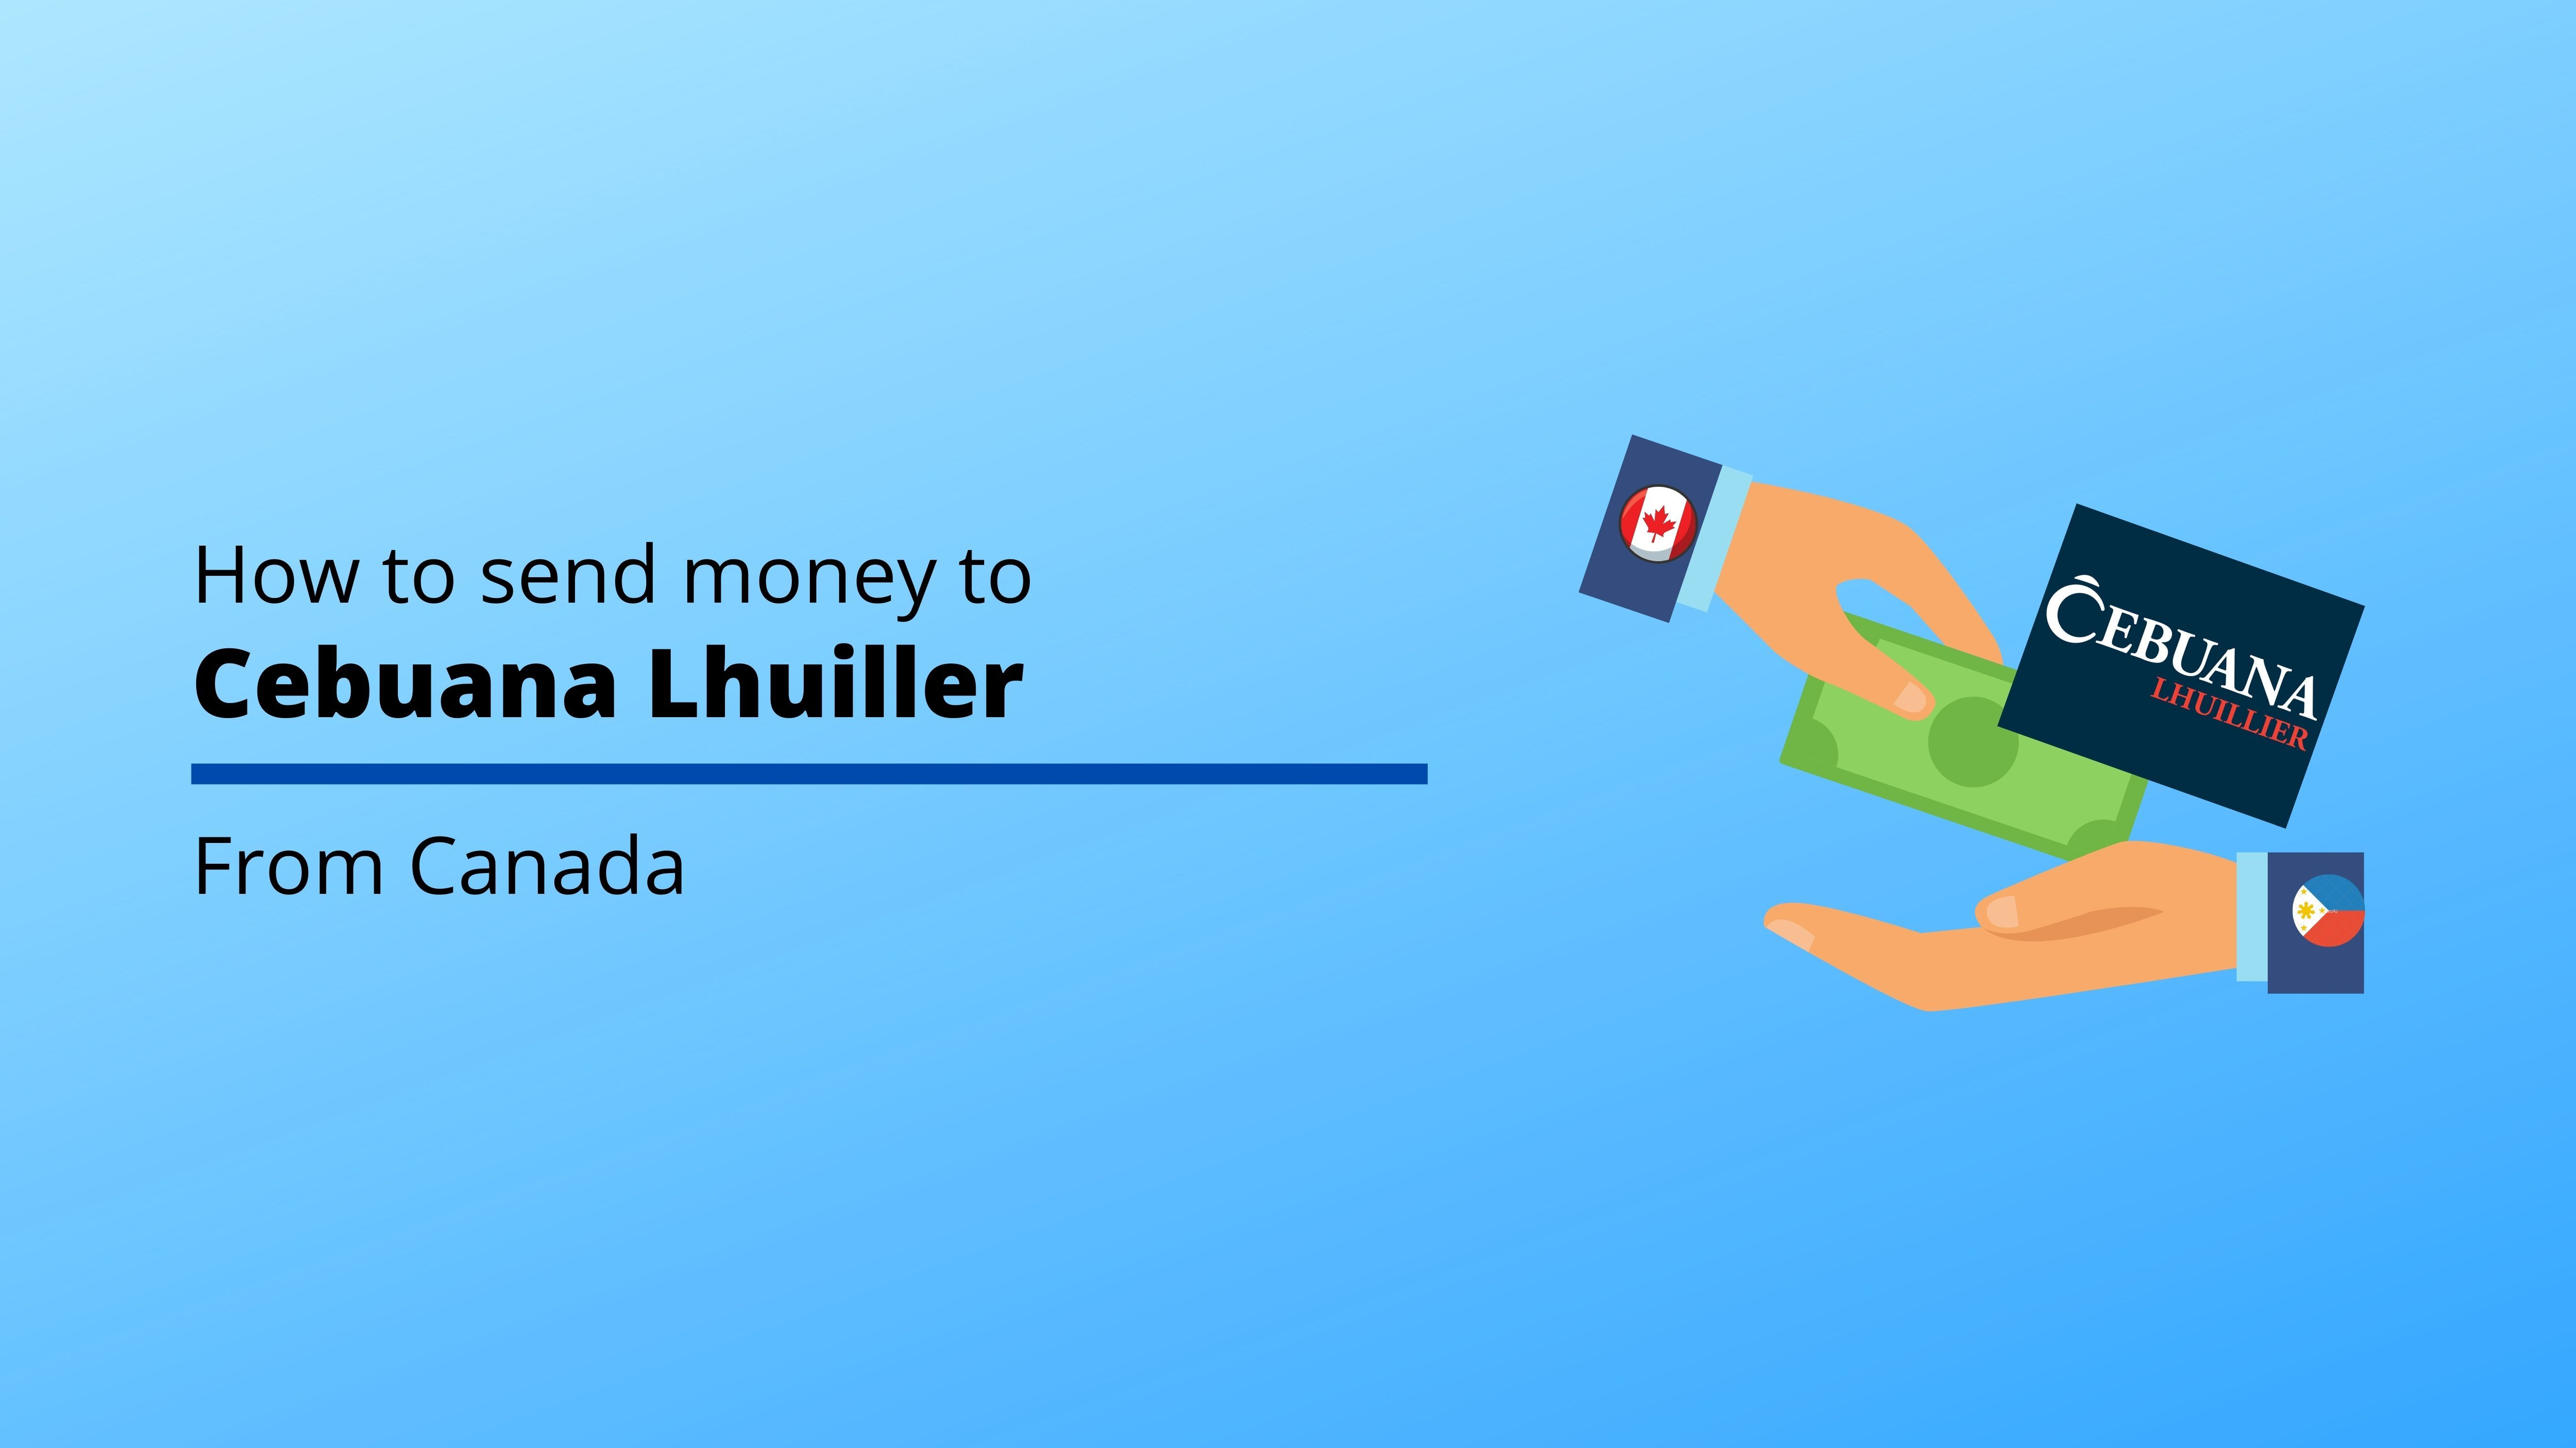 How to Send a Remittance to cebuana lhuiiler